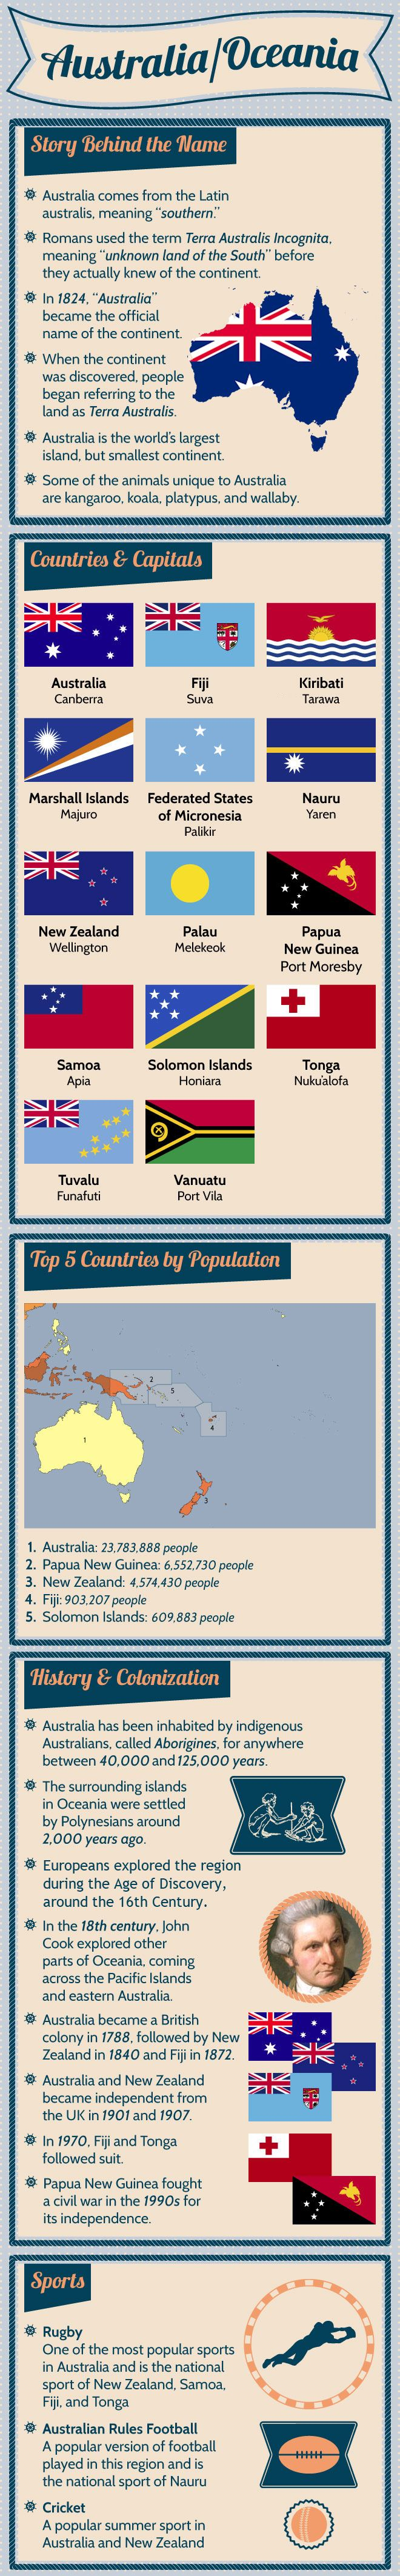 Infographic of Australia Oceania Facts